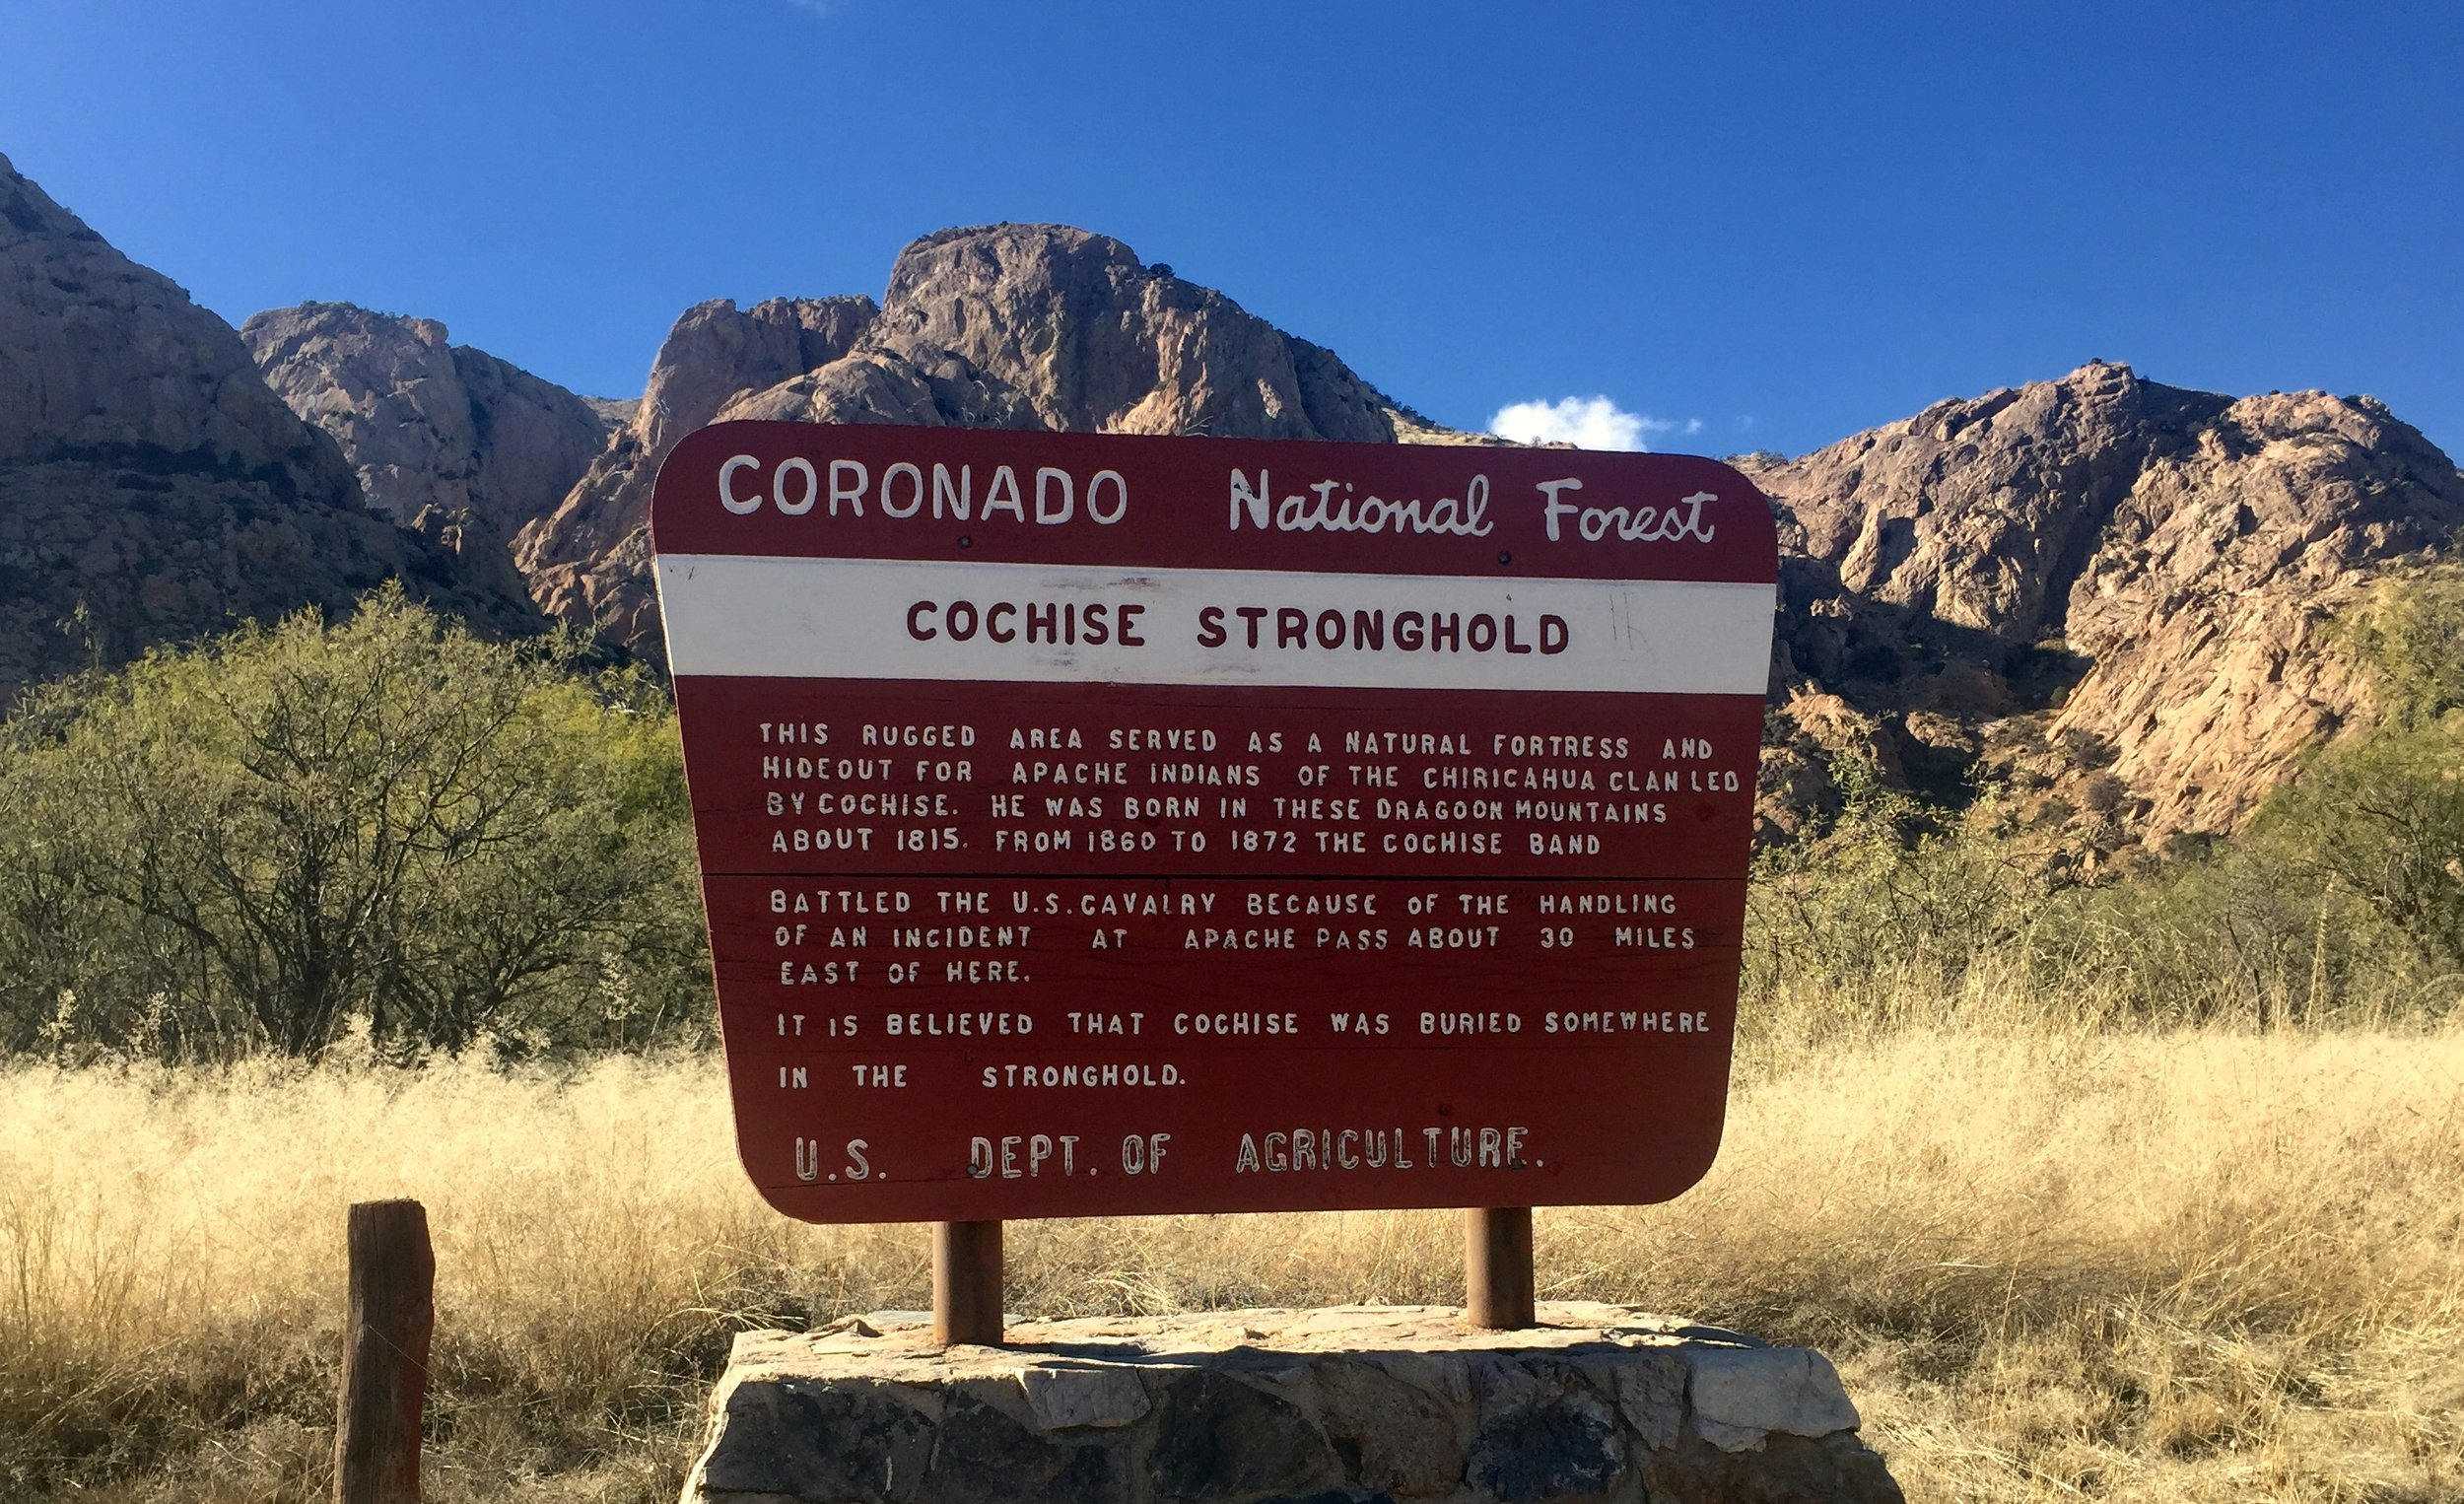 Spend a day exploring Arizona's past in the Dragoon Mountains in the dog-friendly Coronado National Forest. Just walking the short Nature Loop gives any visitor an appreciation for why these granite mountains and canyons were Chiricahua Apache Chief Cochise's favorite stronghold. #McSquareDoodles #dogfriendlytravel #dogfriendlyArizona #doghikes